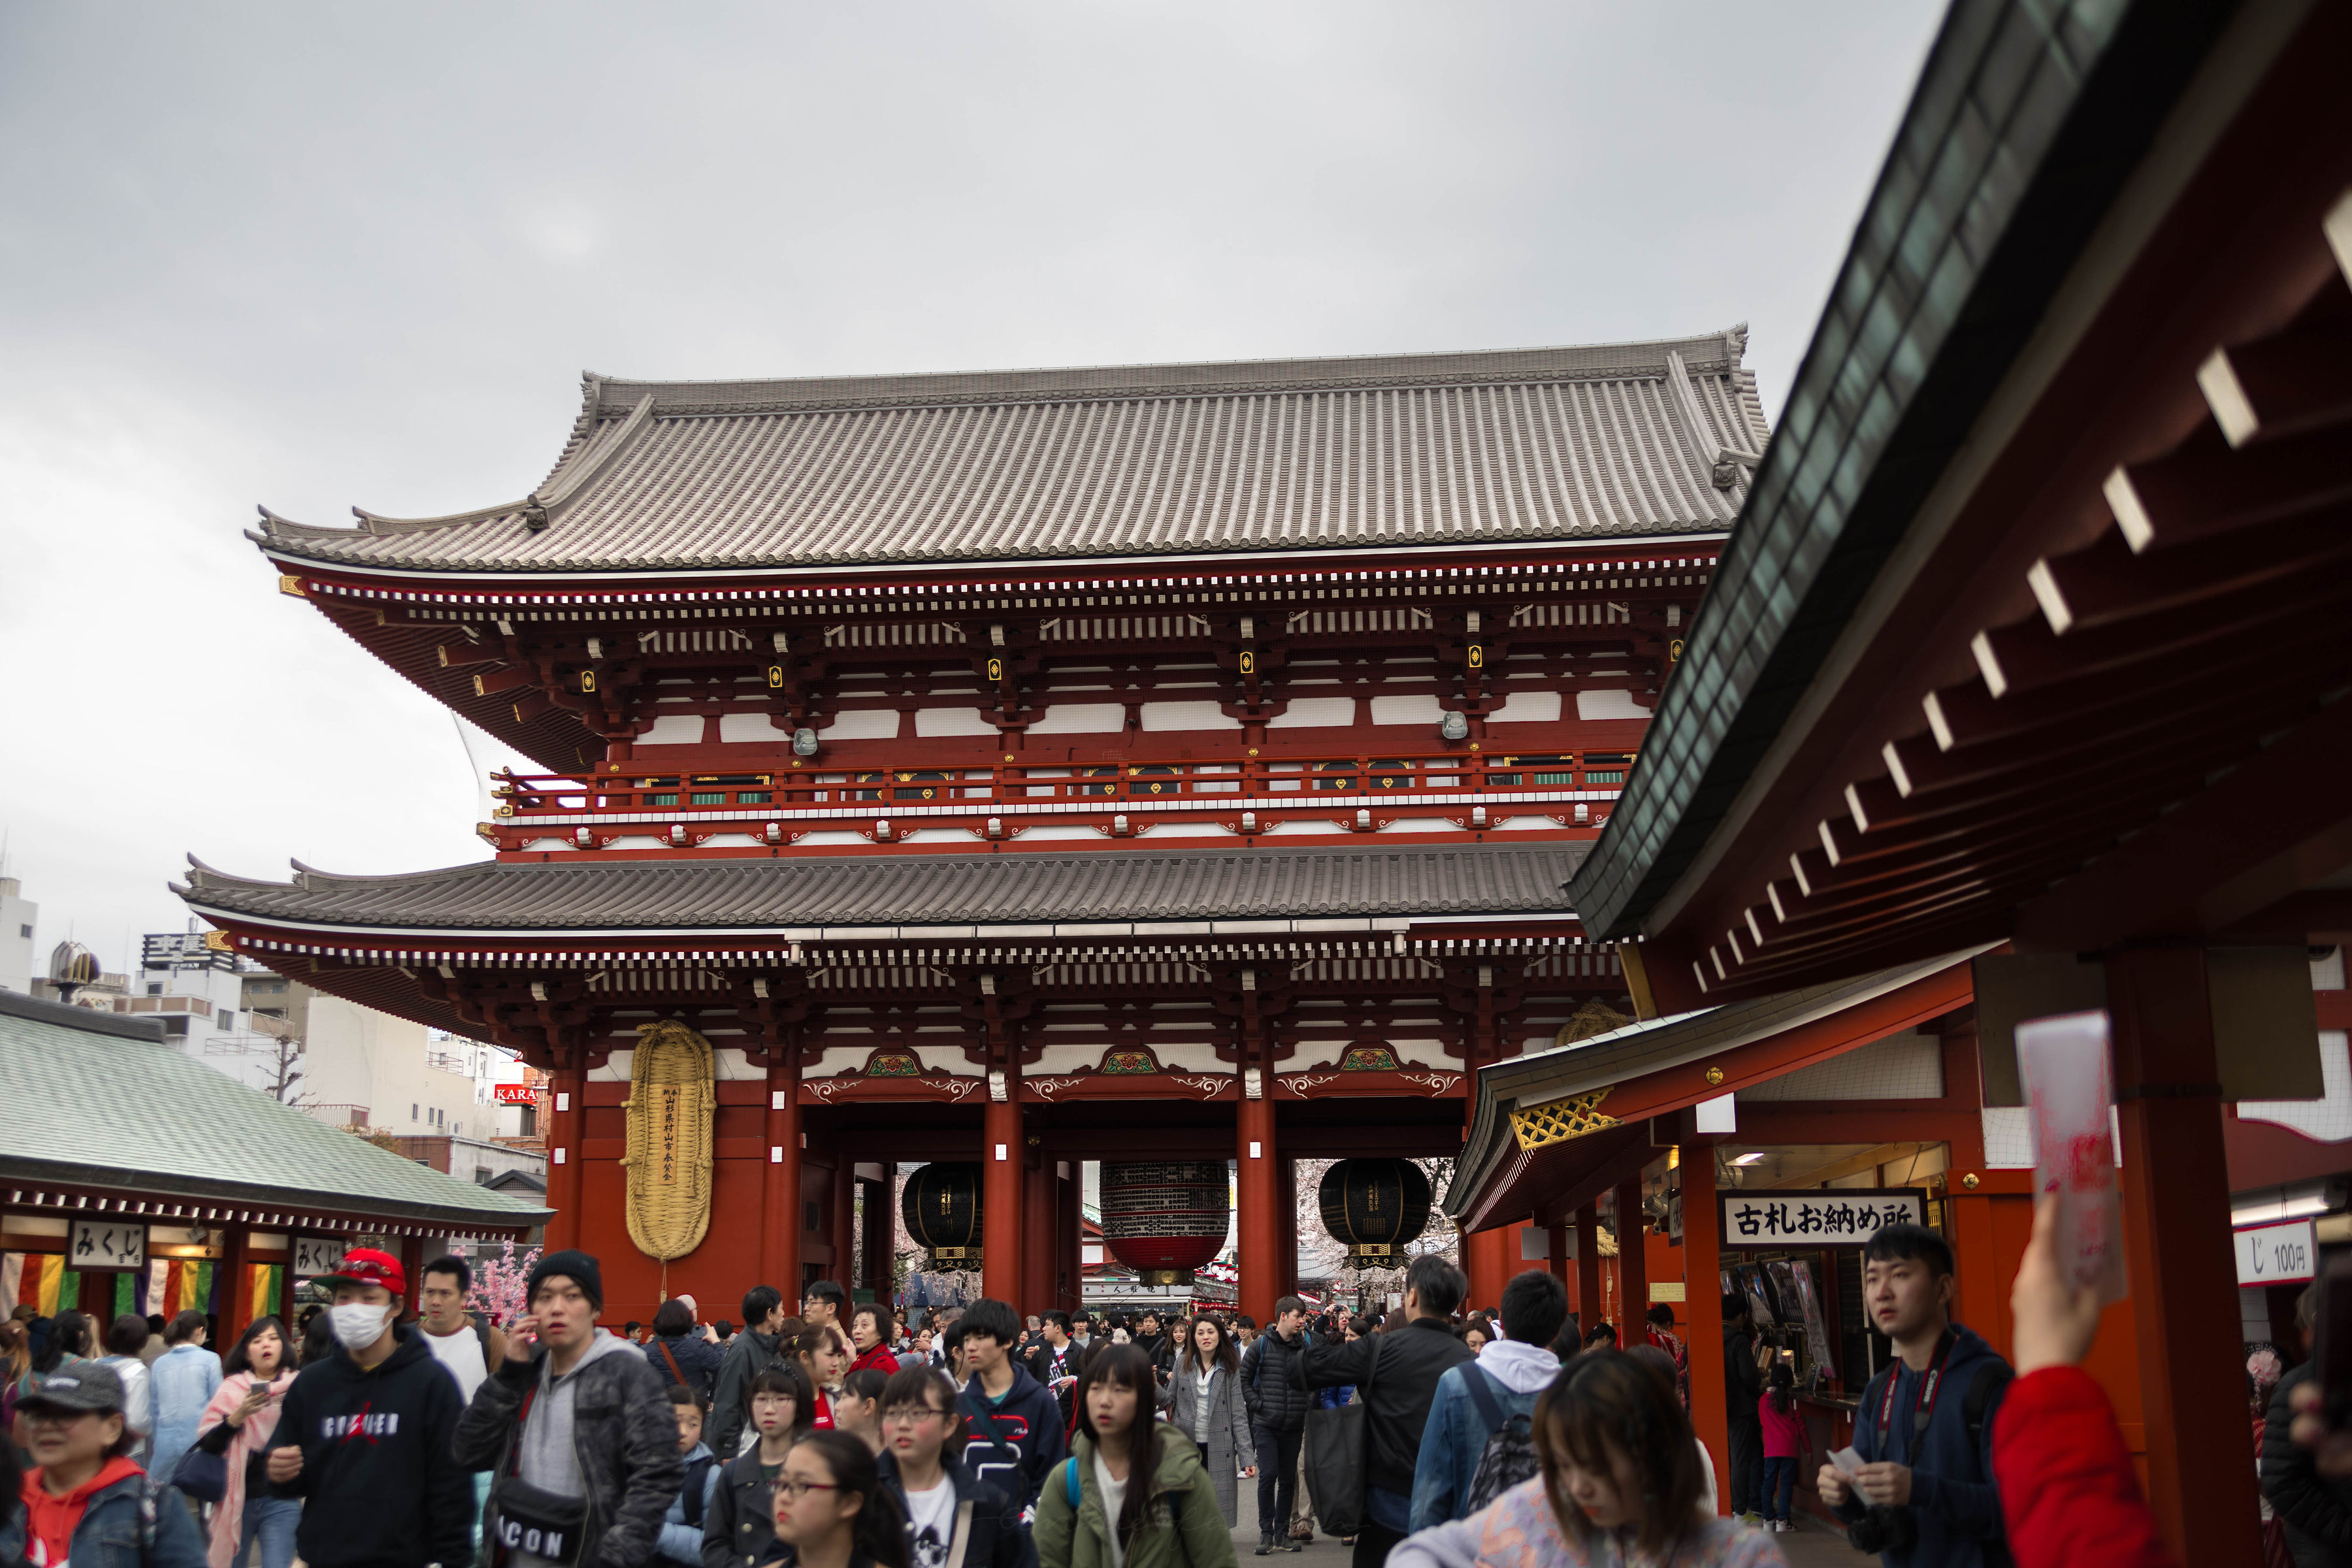 Crowds of People at Senso-Ji Temple Kaminarimon Thunder Gate Asakusa Kannon Buddhist Temple in Tokyo, Japan Shrine with Massive Red Japanese Paper Lanterns Near Tokyo Sky Tree Goddess of Mercy by Annie Fairfax